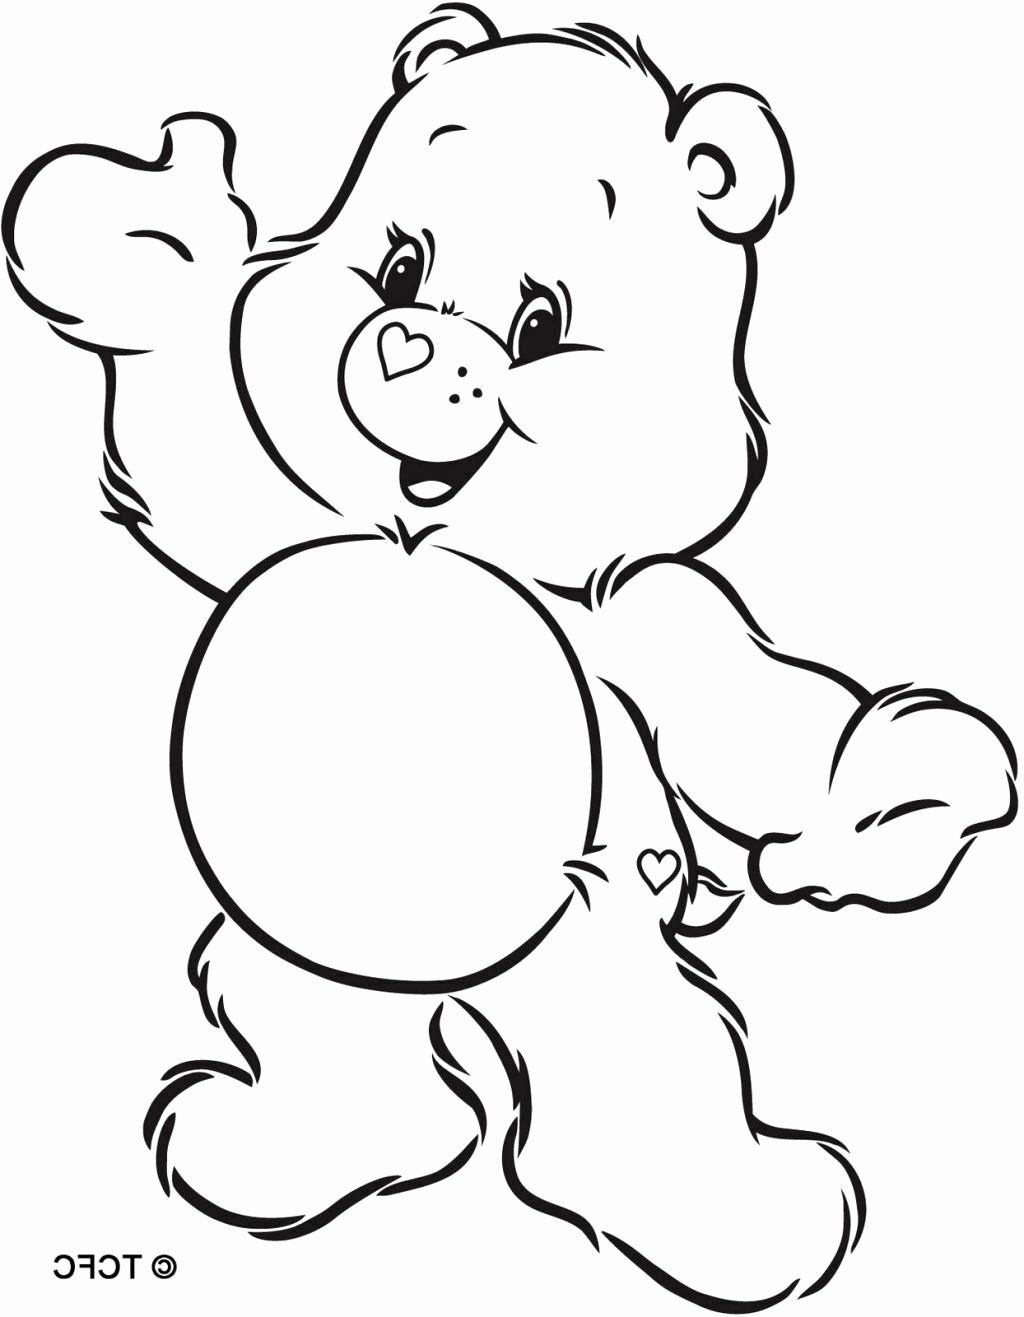 Bear Coloring Pages For Kids Beautiful Que Care Bears Coloring Pages Waggapoultryub Bear Coloring Pages Teddy Bear Coloring Pages Animal Coloring Pages